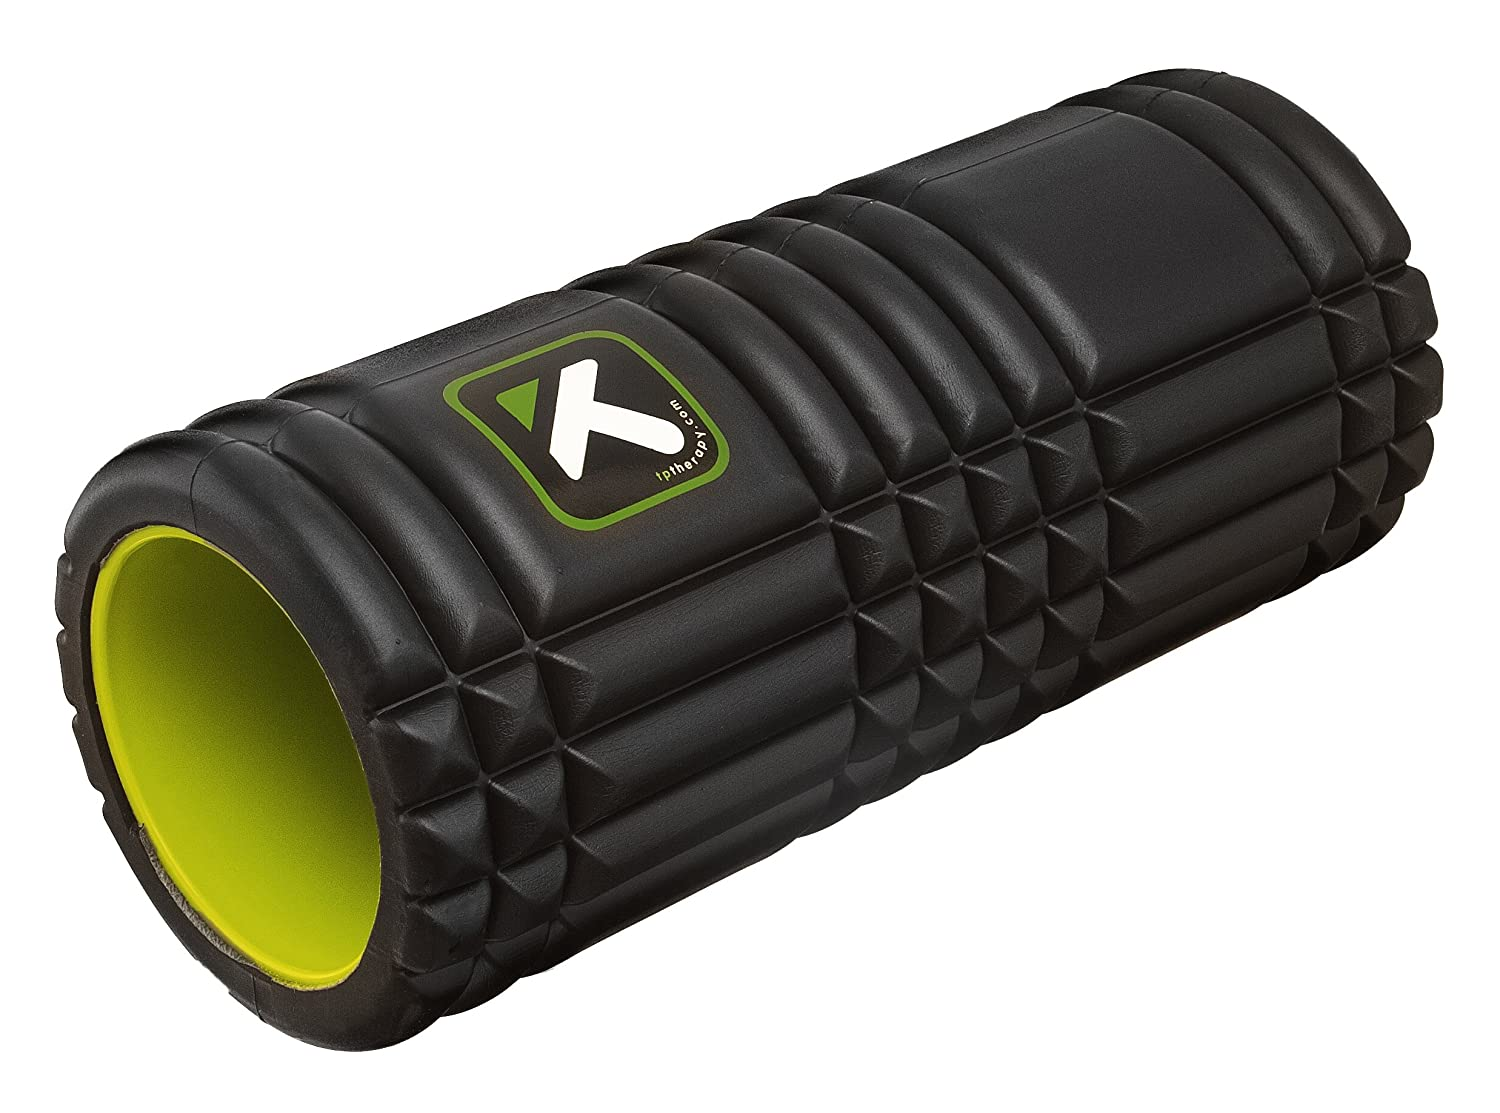 The Grid Triggerpoint Roller kaufen bei amazon